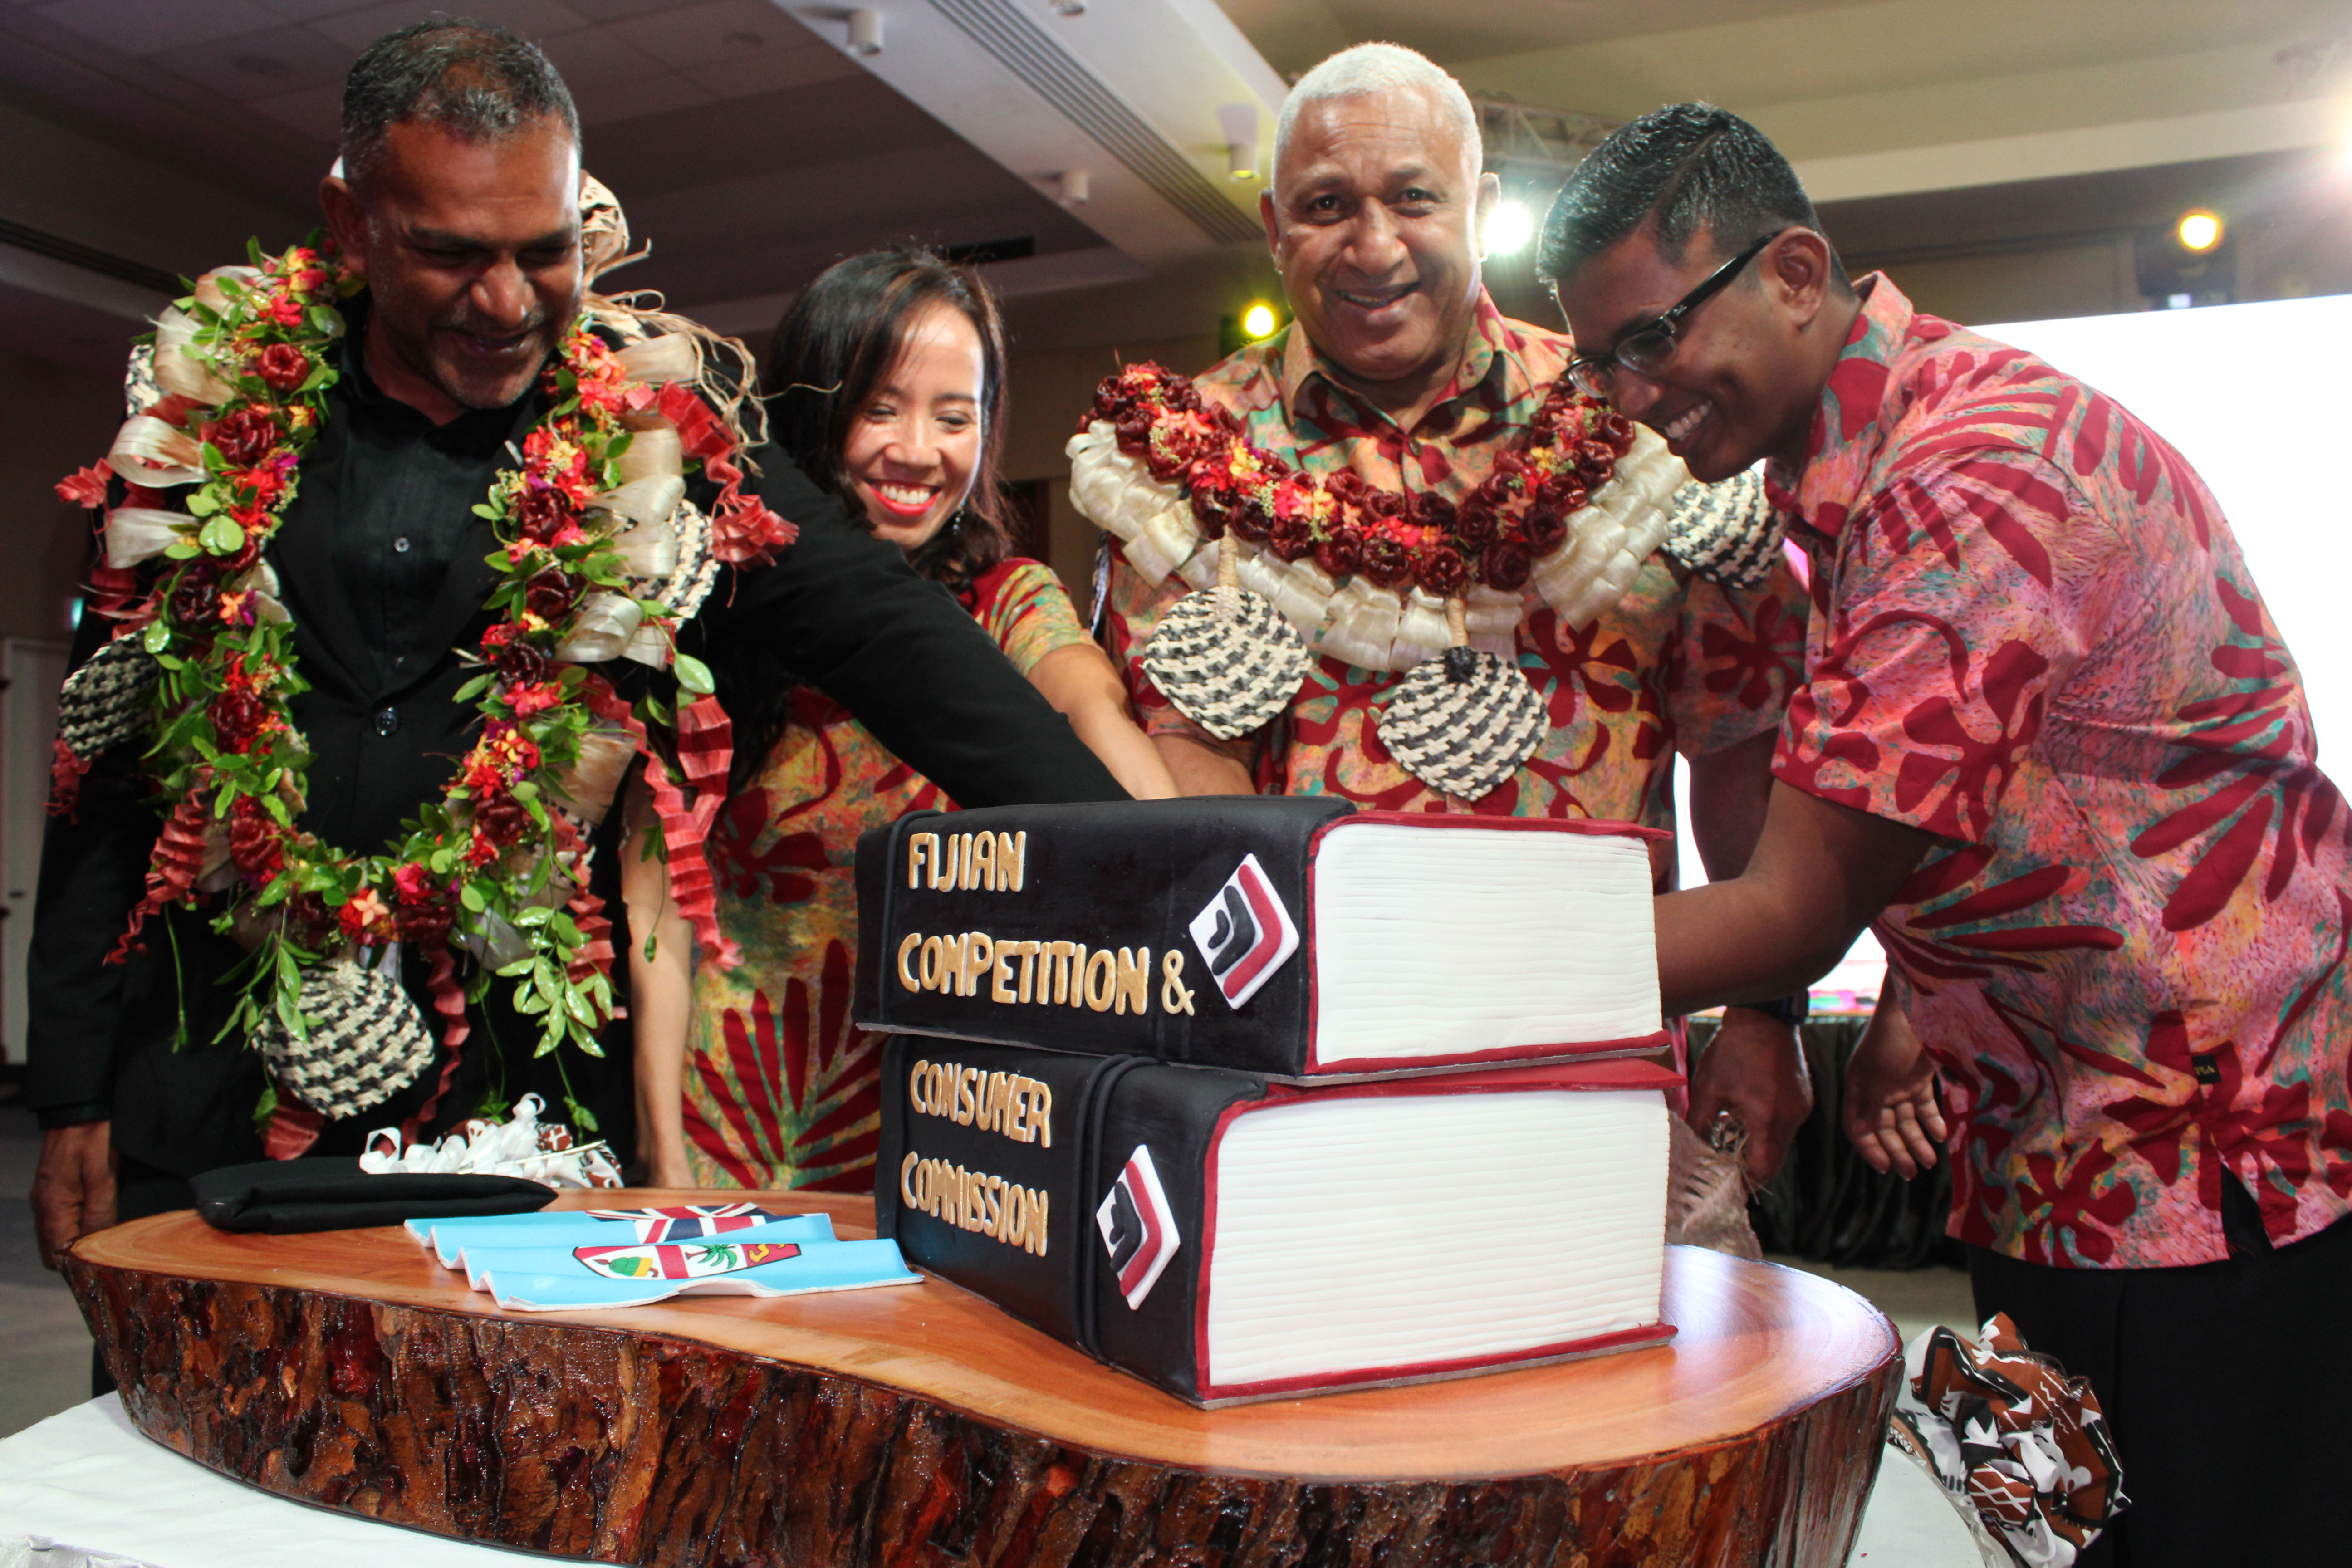 From left, Minister for Industry, Trade and Tourism Faiyaz Koya, Fijian Competition and Consumer Commission chairperson Joann Young, Prime Minister Voreqe Bainimarama and FCCC chief executive officer Joel Abraham during the cake cutting ceremony to mark the launch of FCCC's new branding at the Grand Pacific Hotel in Suva on March 26, 2018.  Photo: Photo: Simione Haravanua